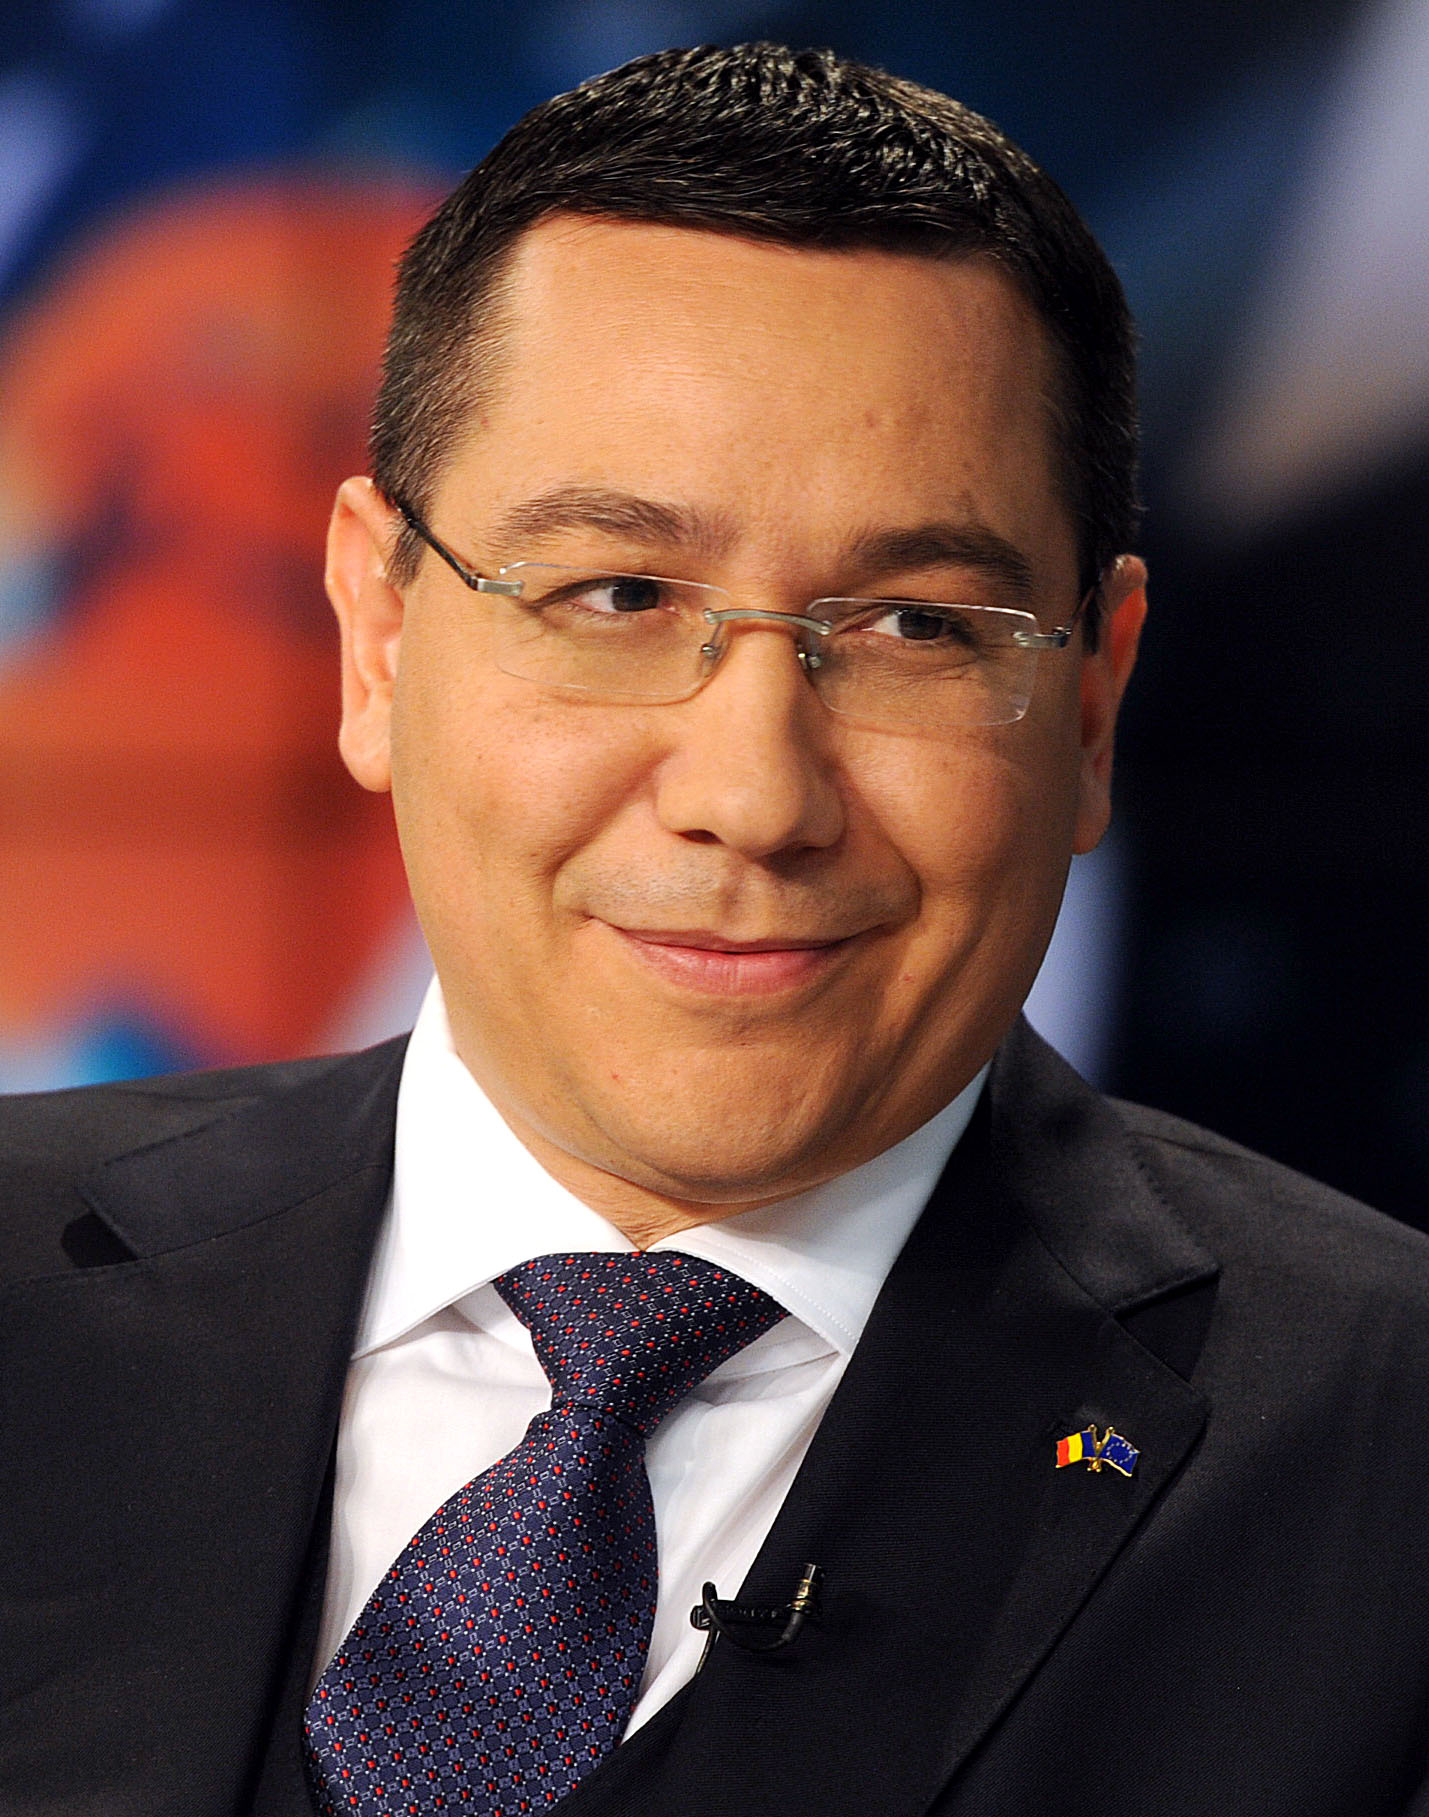 The 48-year old son of father ,Ninel Ponta and mother  Cornelia Naum Victor Ponta in 2021 photo. Victor Ponta earned a  million dollar salary - leaving the net worth at 10 million in 2021